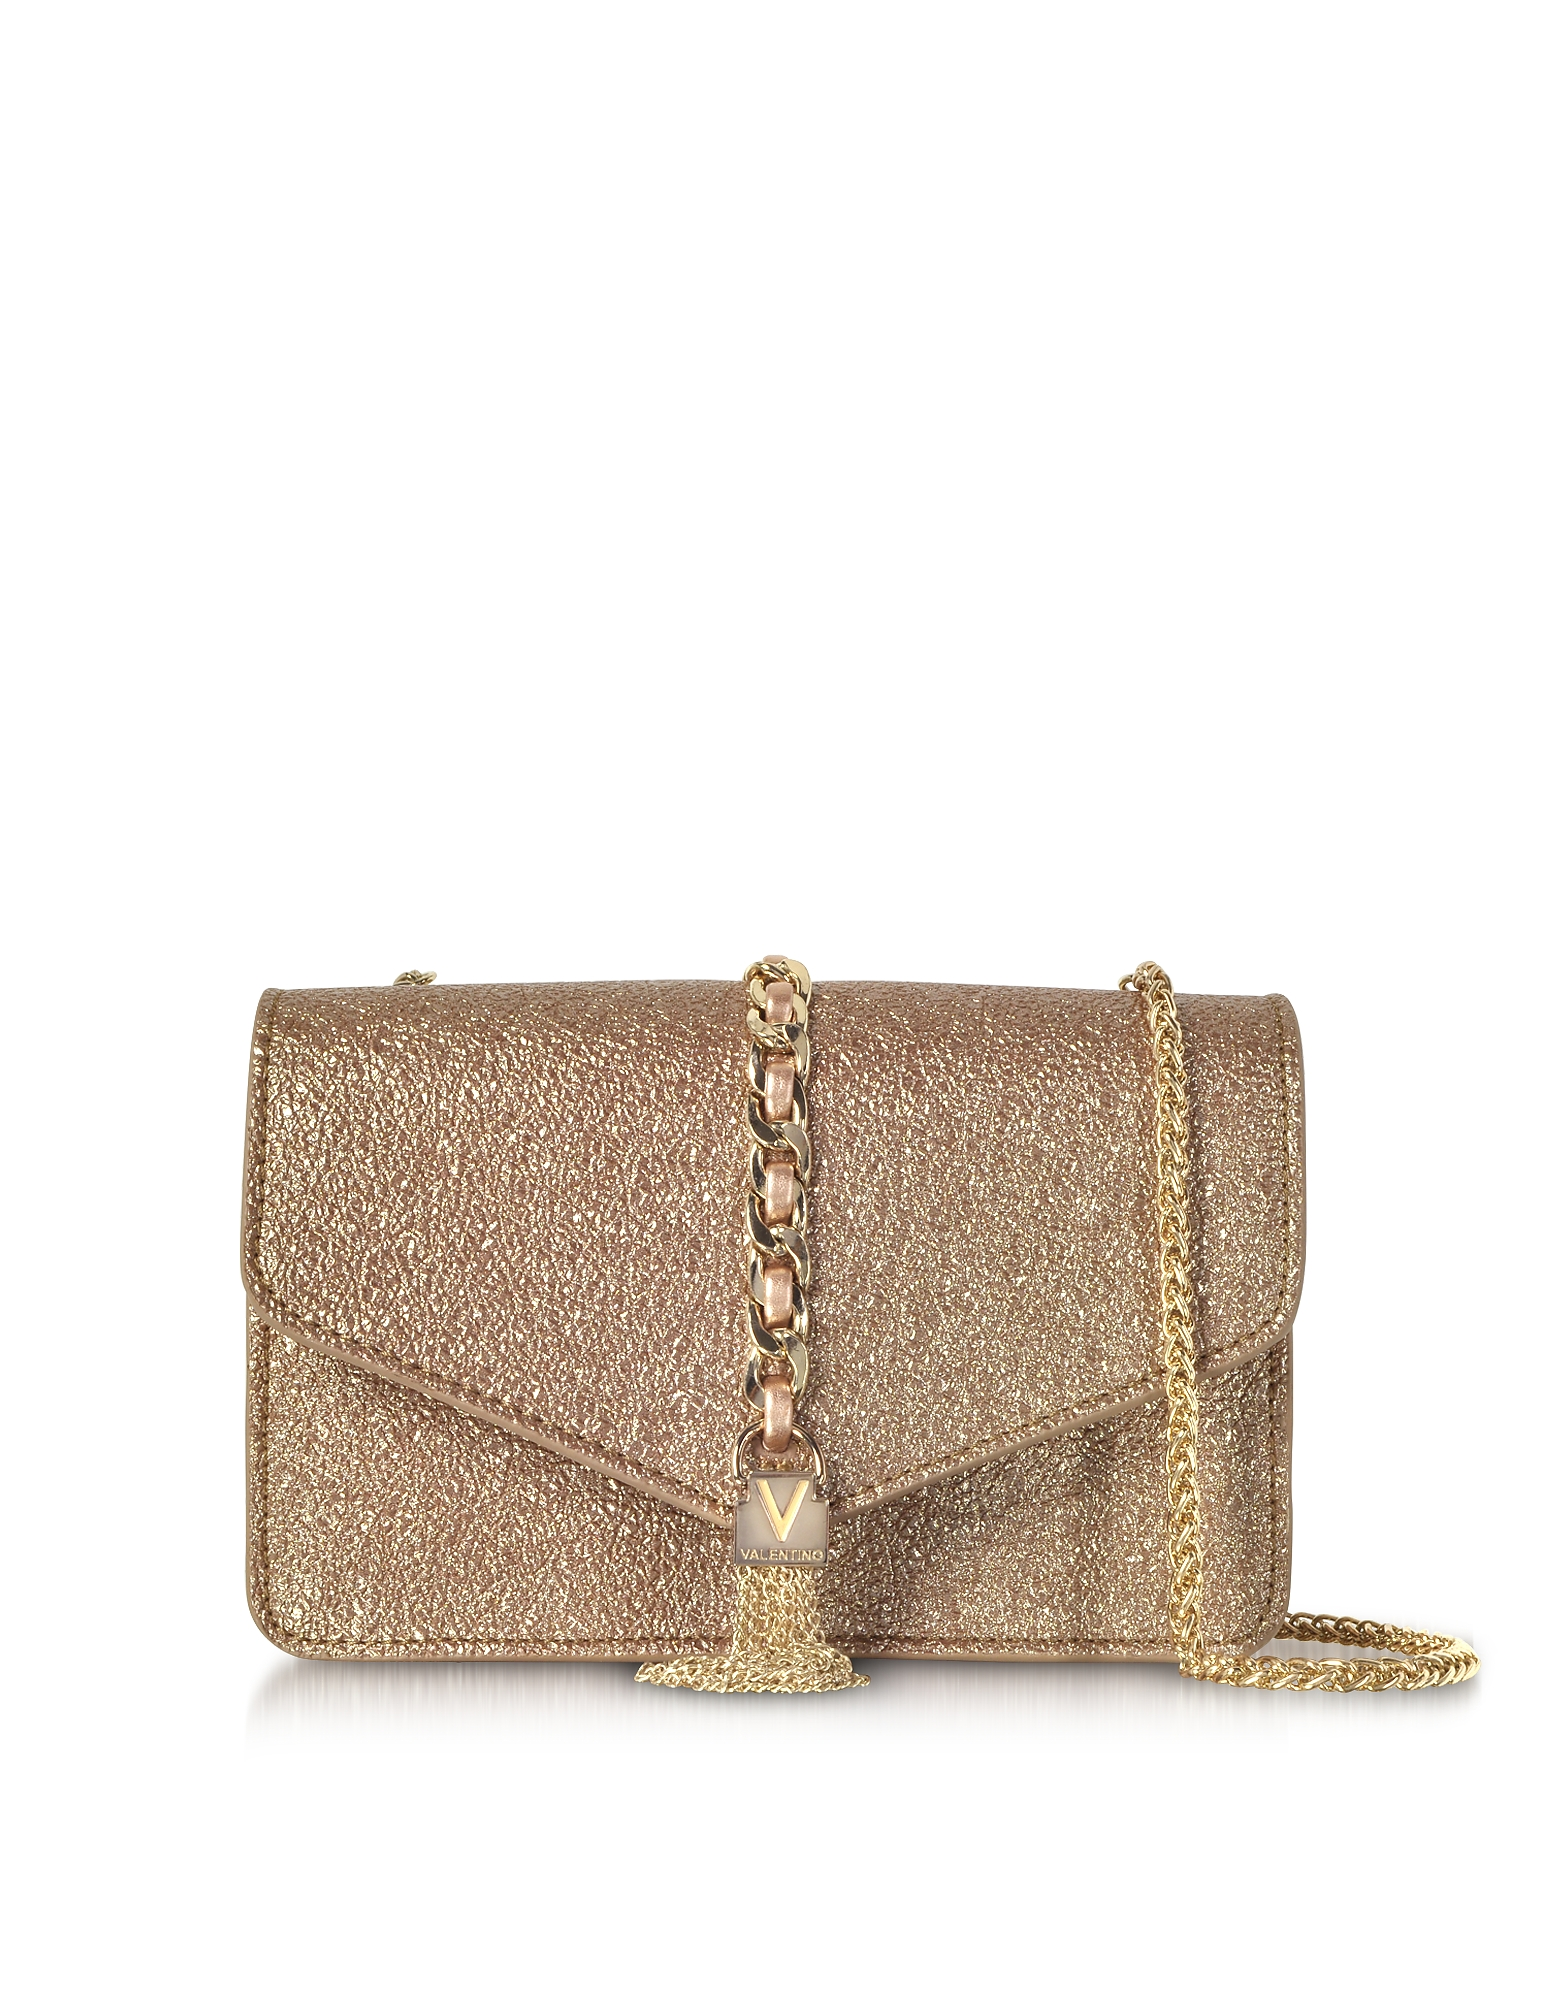 Image of Valentino by Mario Valentino Designer Handbags, Eco Crackled Metallic Leather Burlesque Small Shoulder Bag